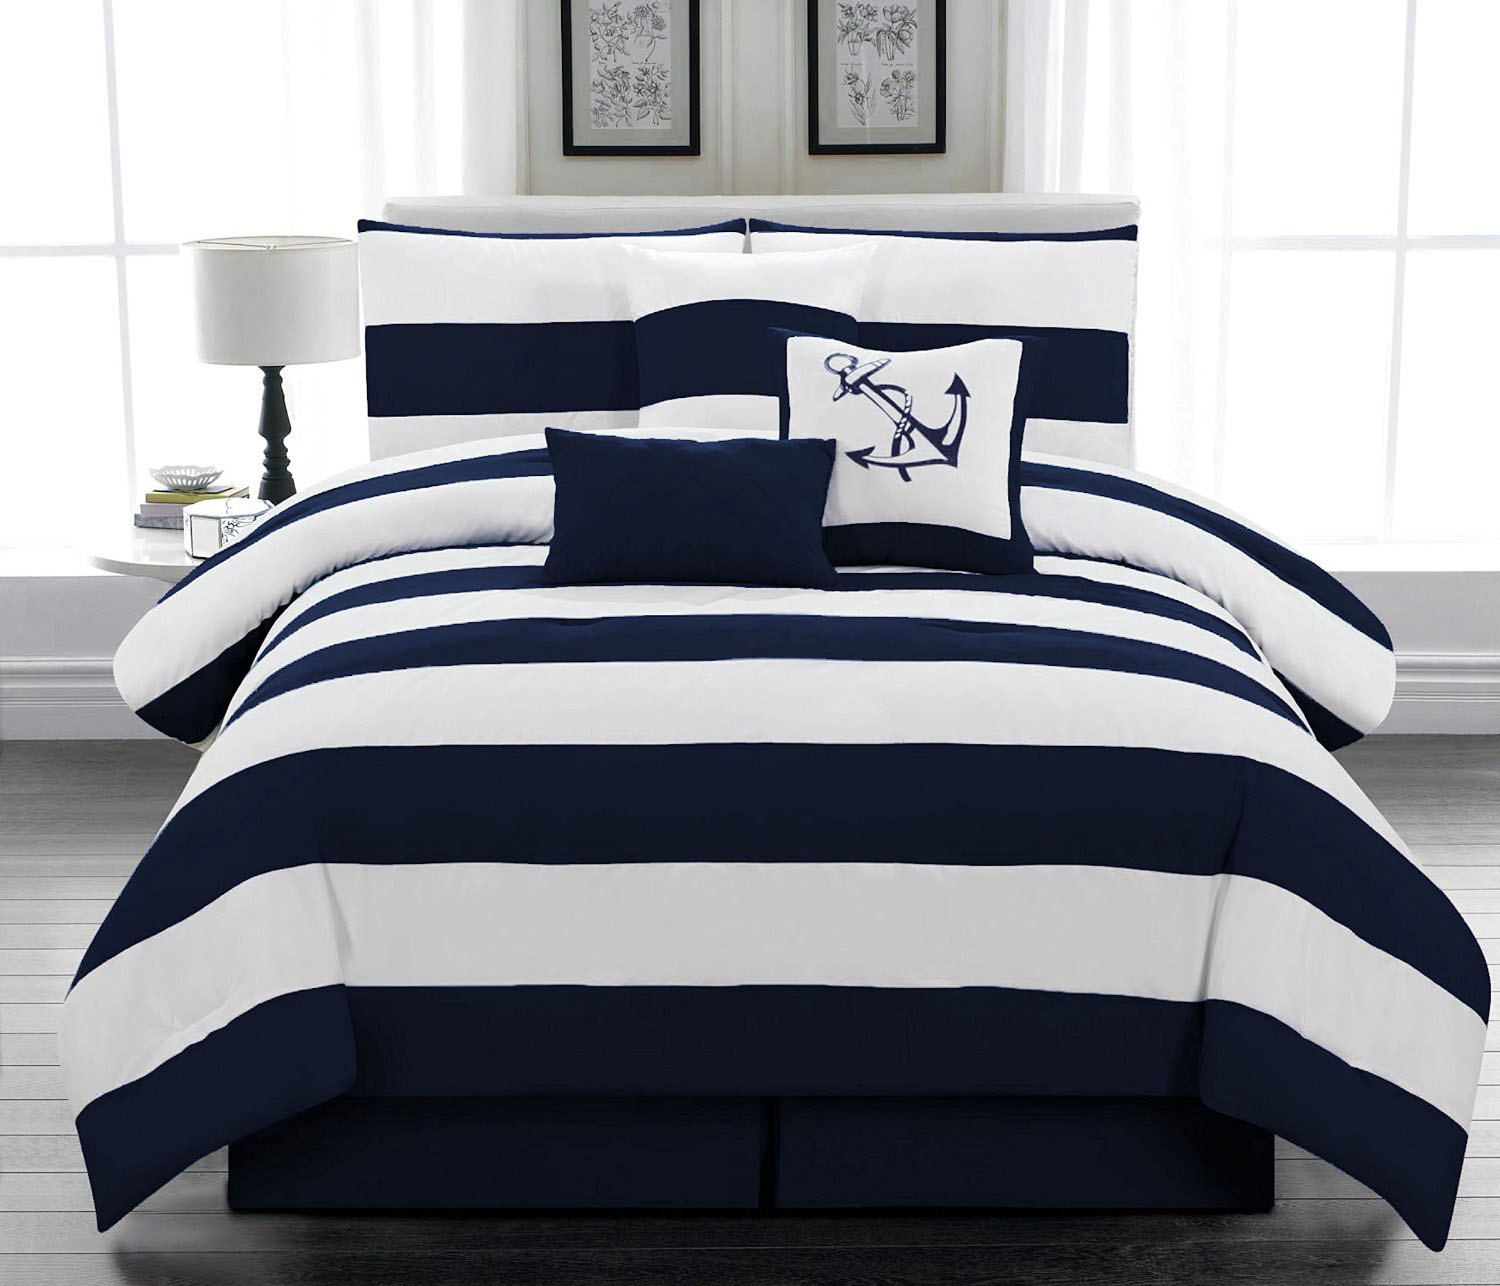 Nautical Themed Bedding Set